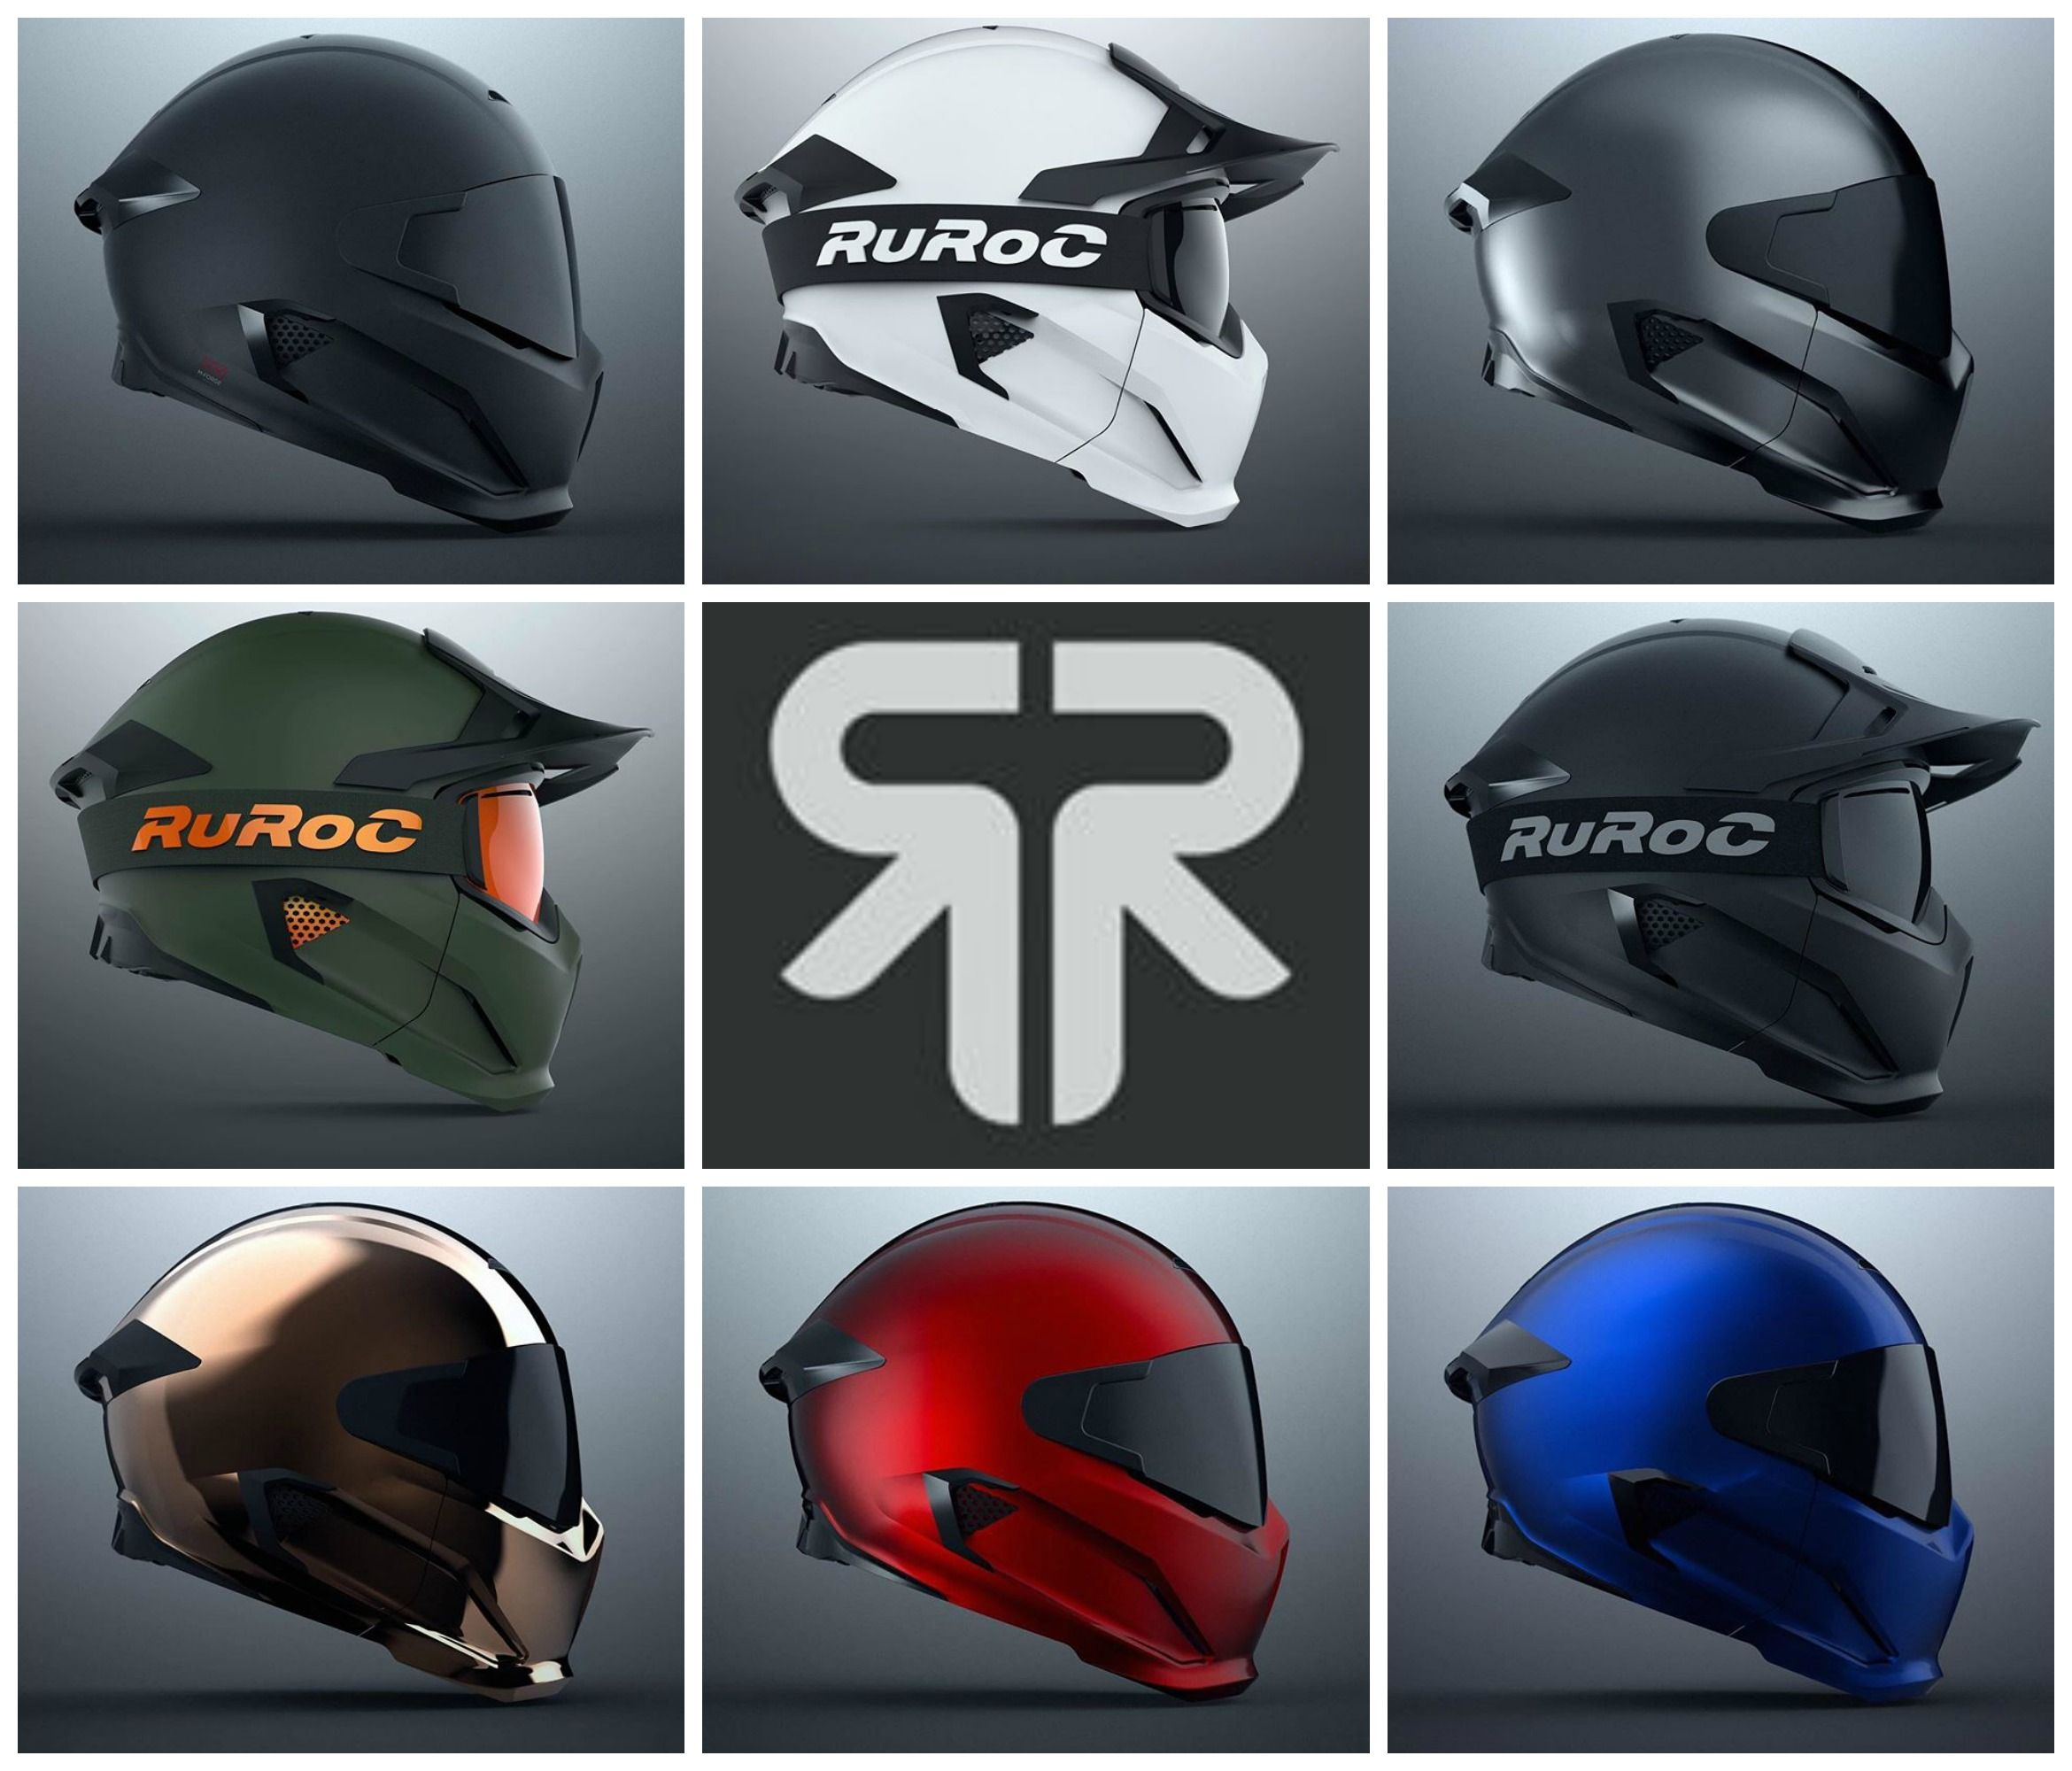 Ruroc Motorcycle Helmet | Motorcycle helmet, Helmets and Riding gear